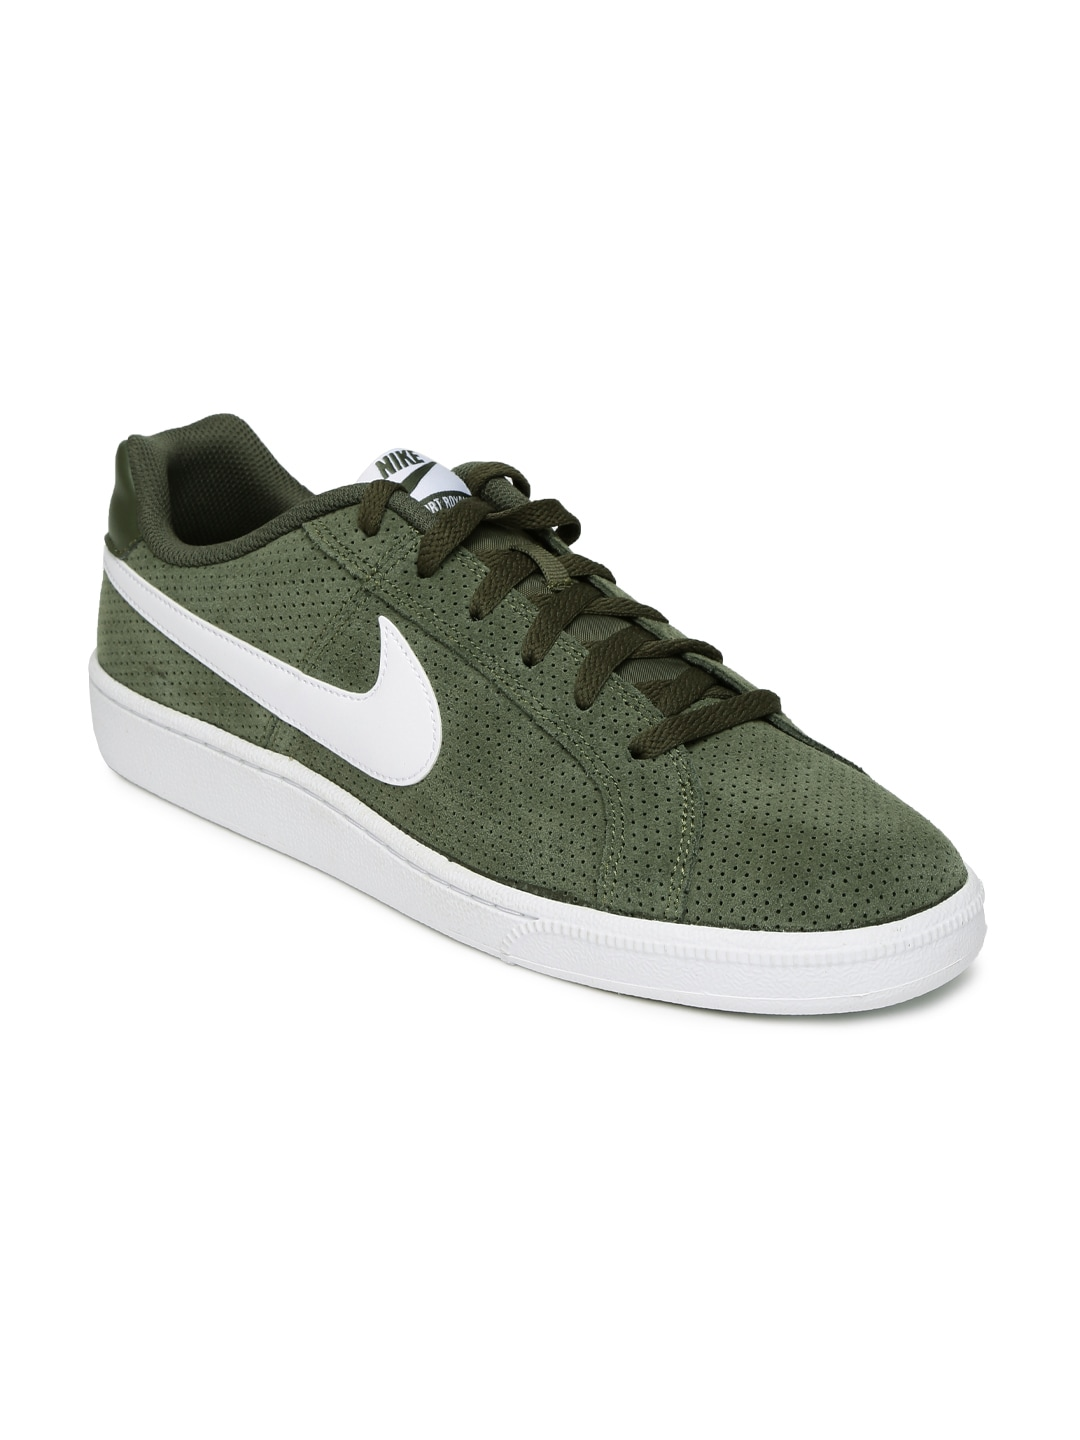 separation shoes 626b8 e8133 Nike 819802-310 Men Olive Green Court Royale Sneakers- Price in India